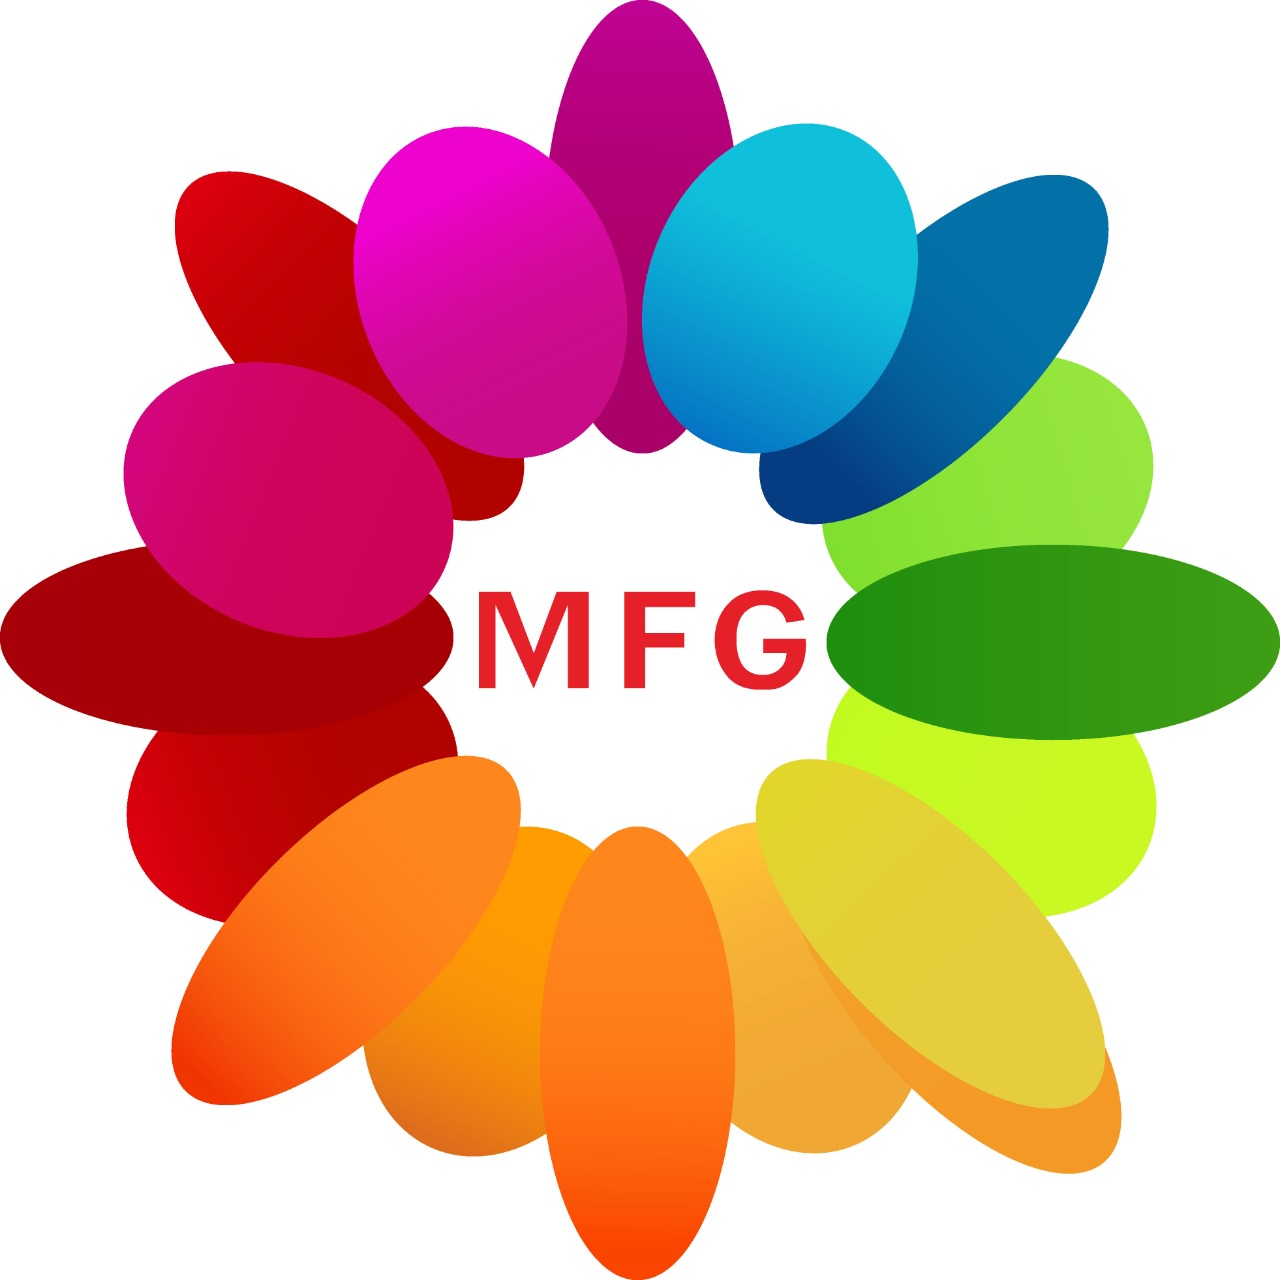 1/2kg Chocolate Almond Rich Cream Cake